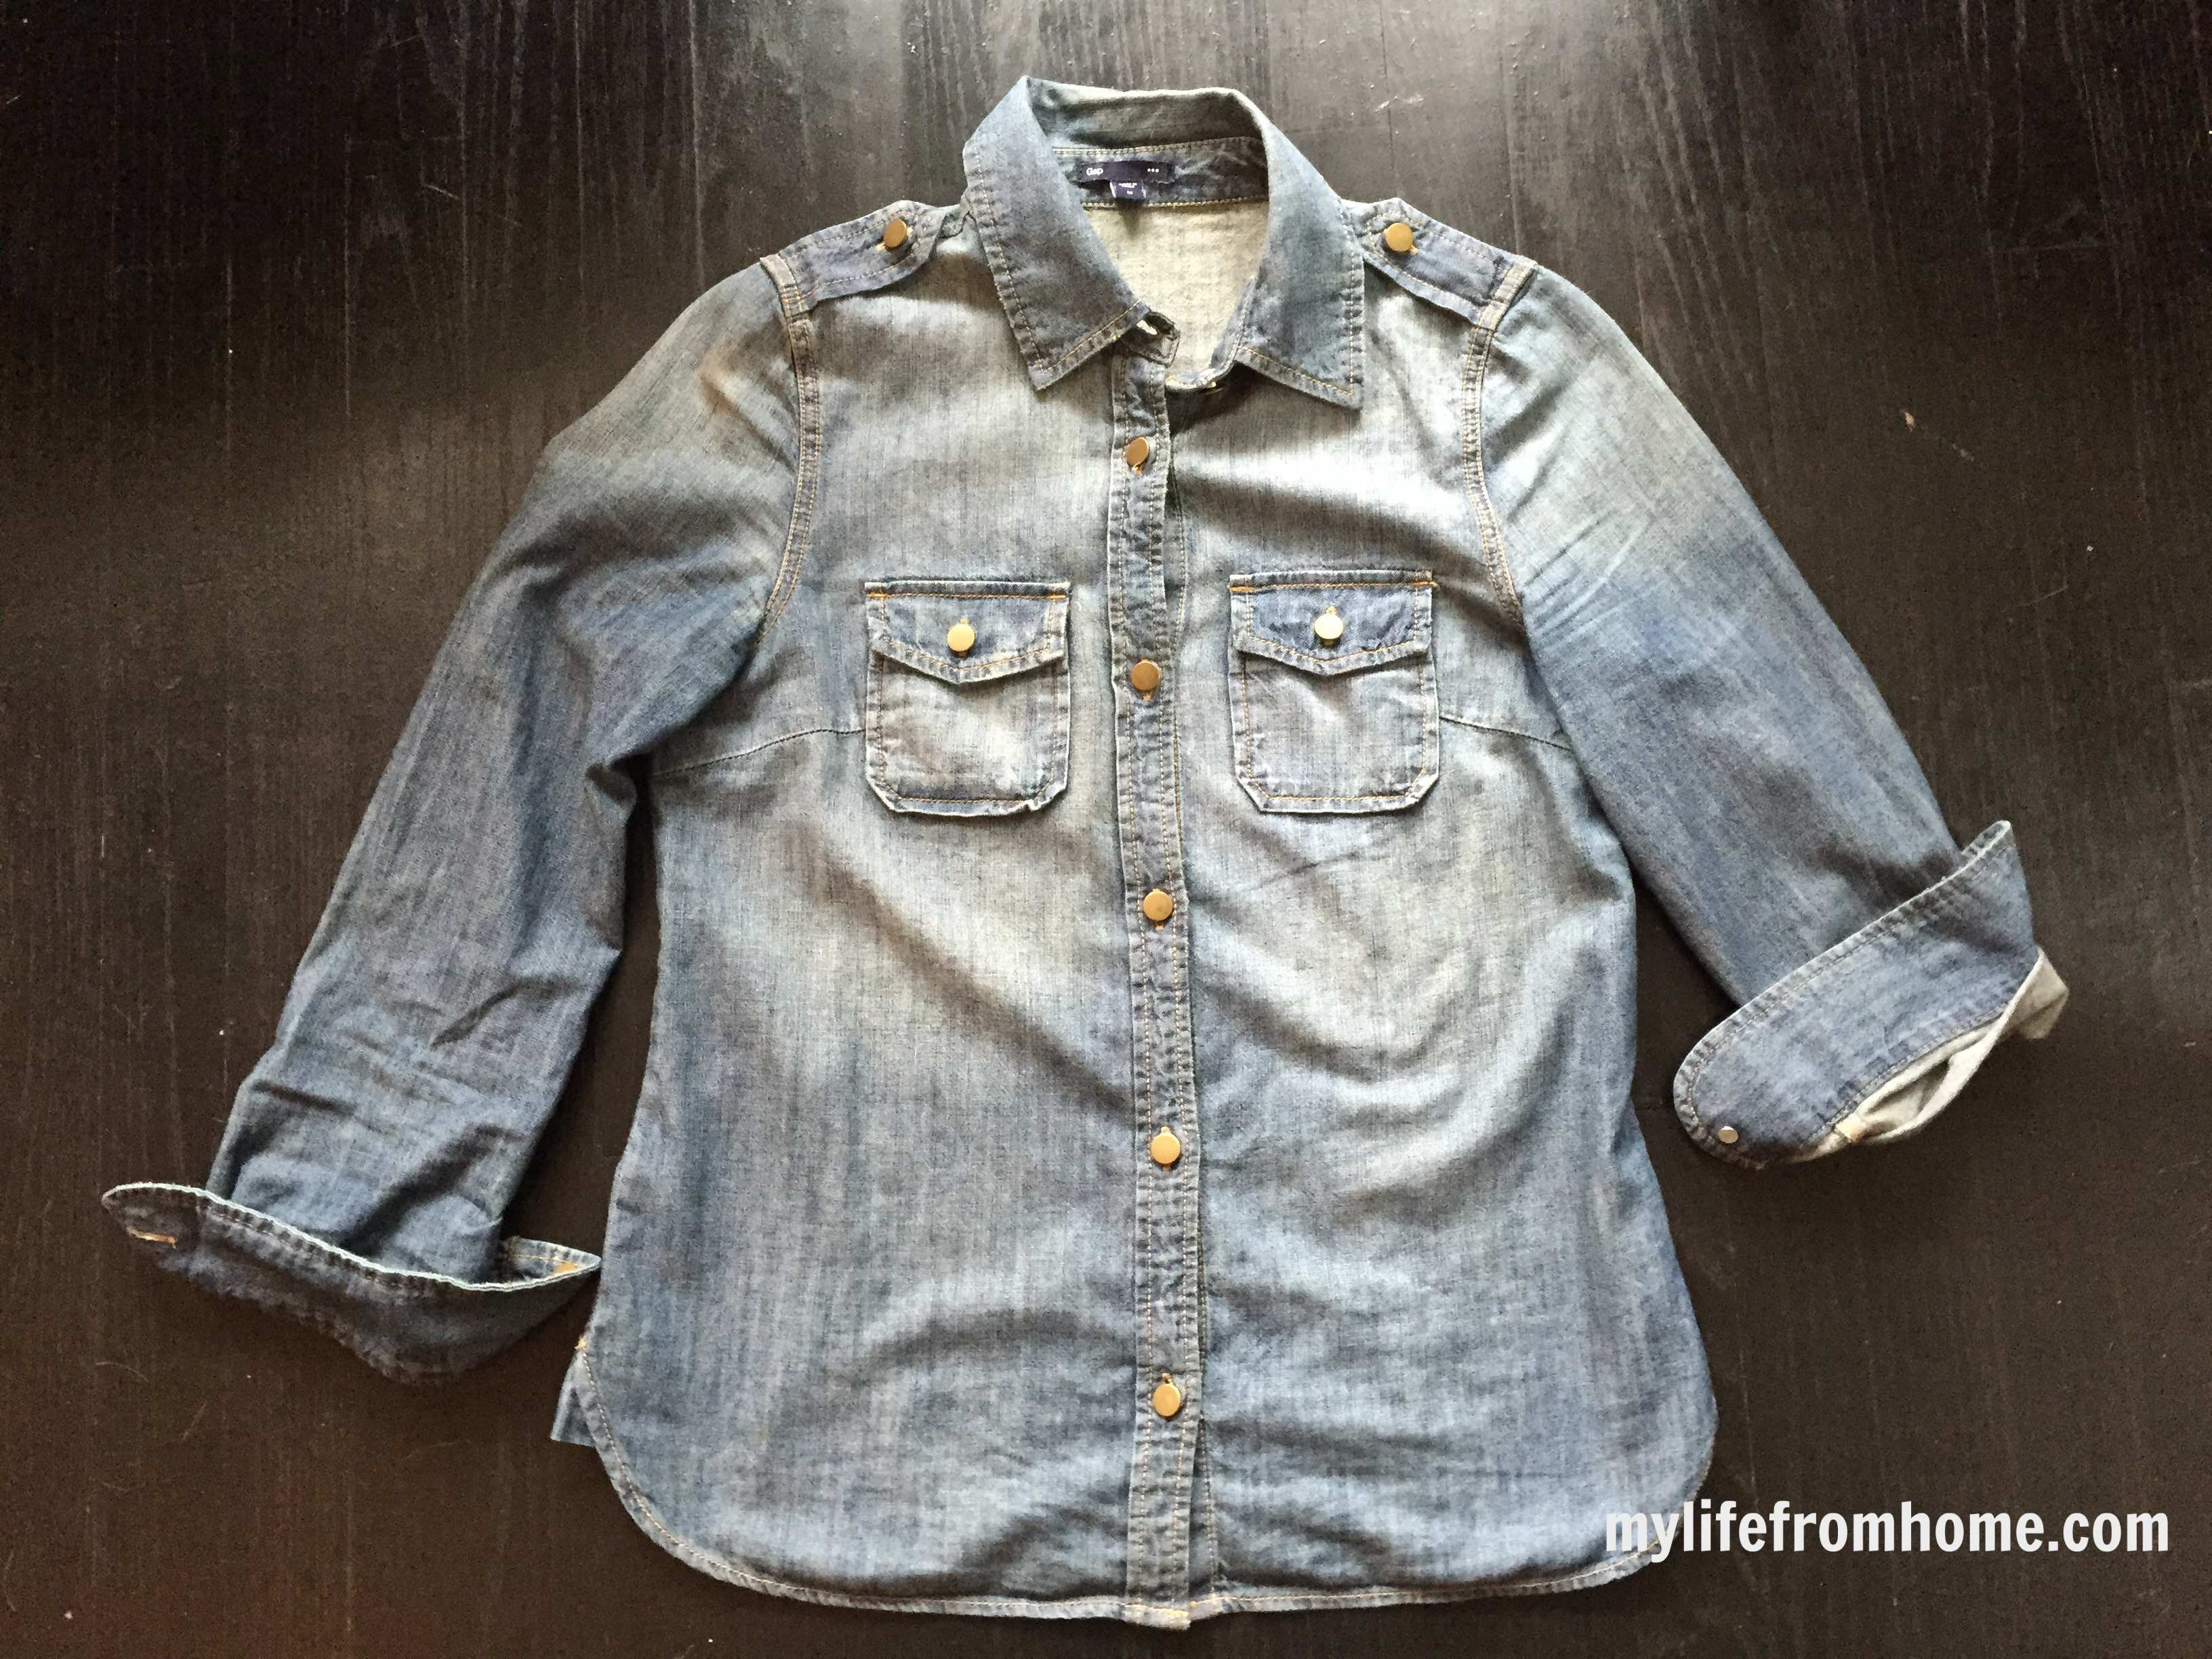 Gap Denim Shirt by www.whitecottagehomeandliving.com